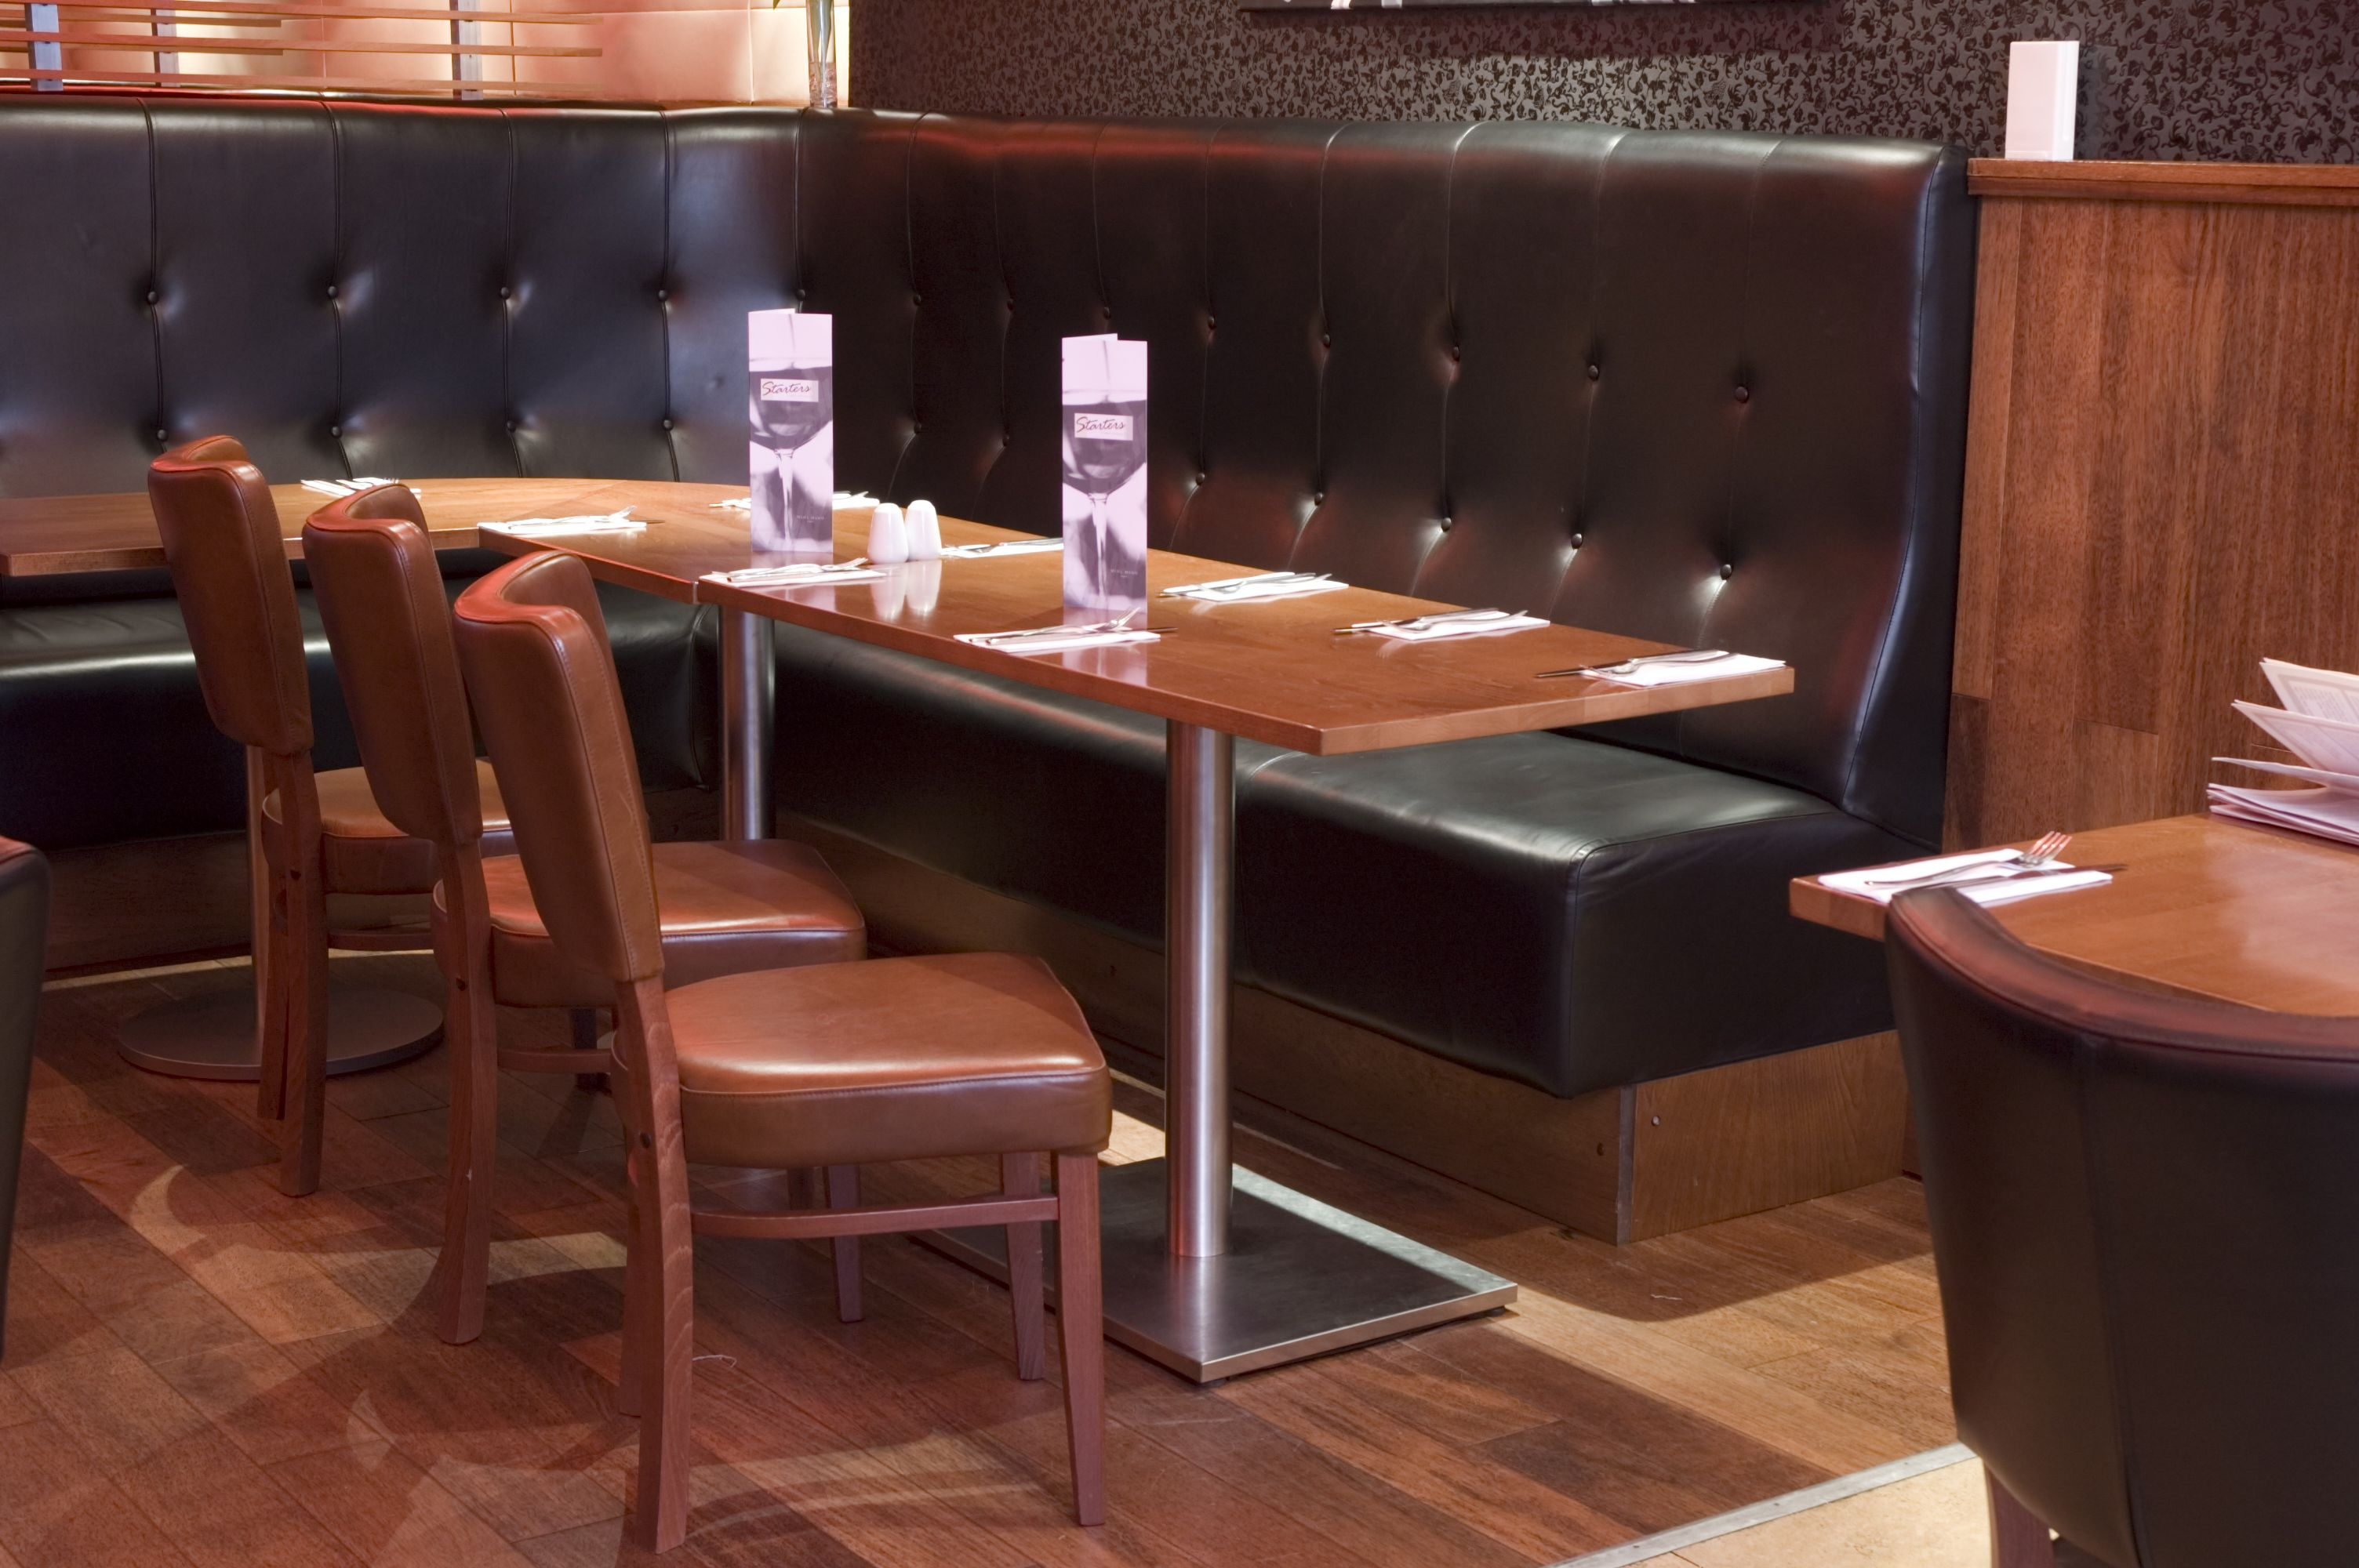 restaurant bar table and chairs yahoo image search results arch wine bar pinterest. Black Bedroom Furniture Sets. Home Design Ideas